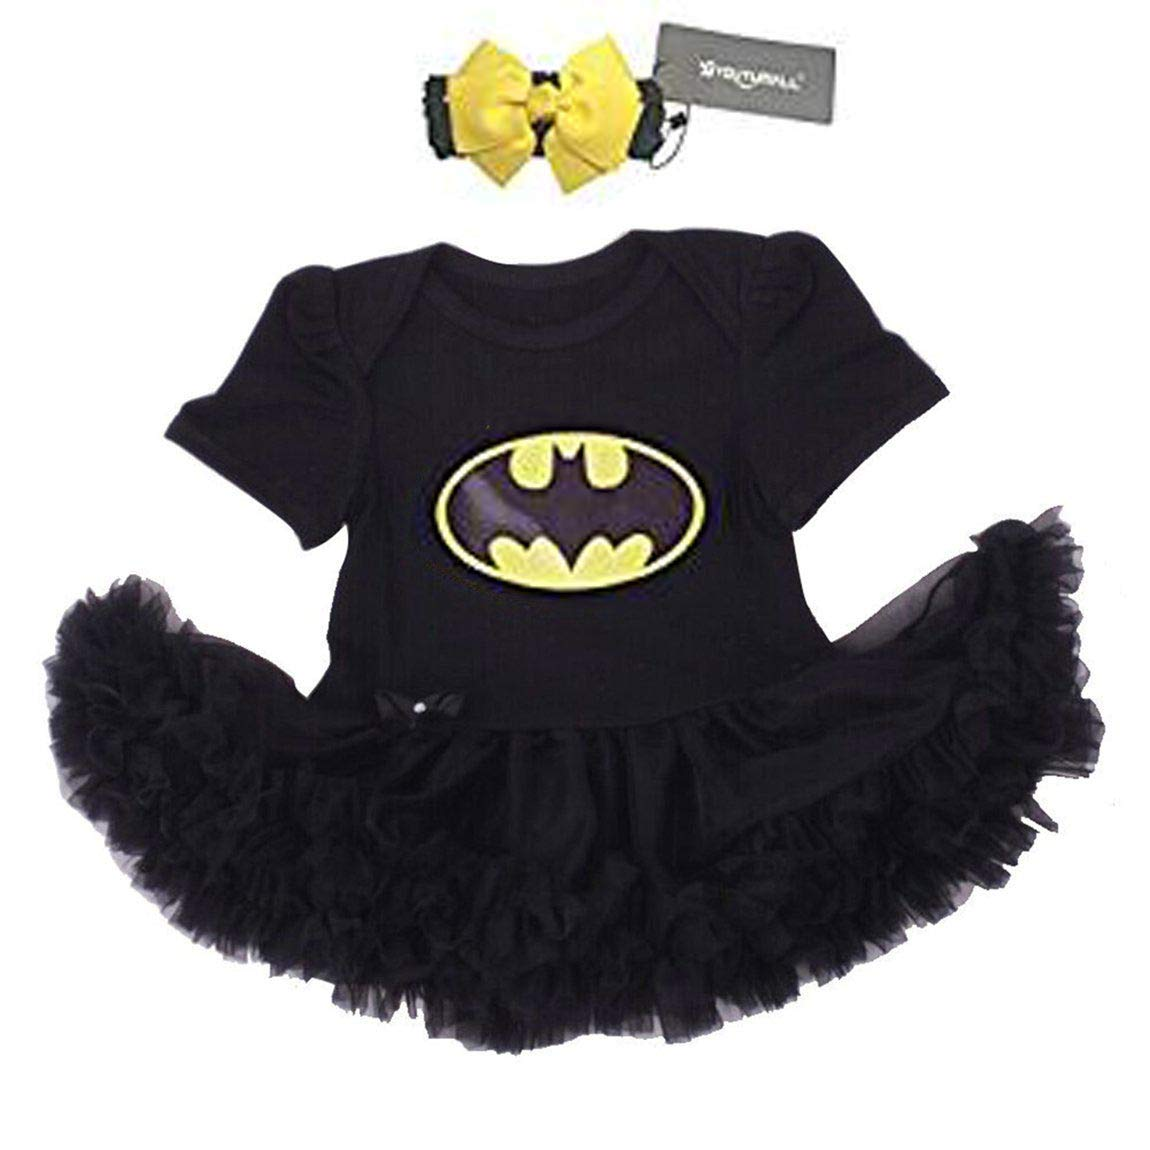 Baby Party Dress Infant Baby Cool Costume Newborn Girls Party Dress Cosplay  6-12 Months